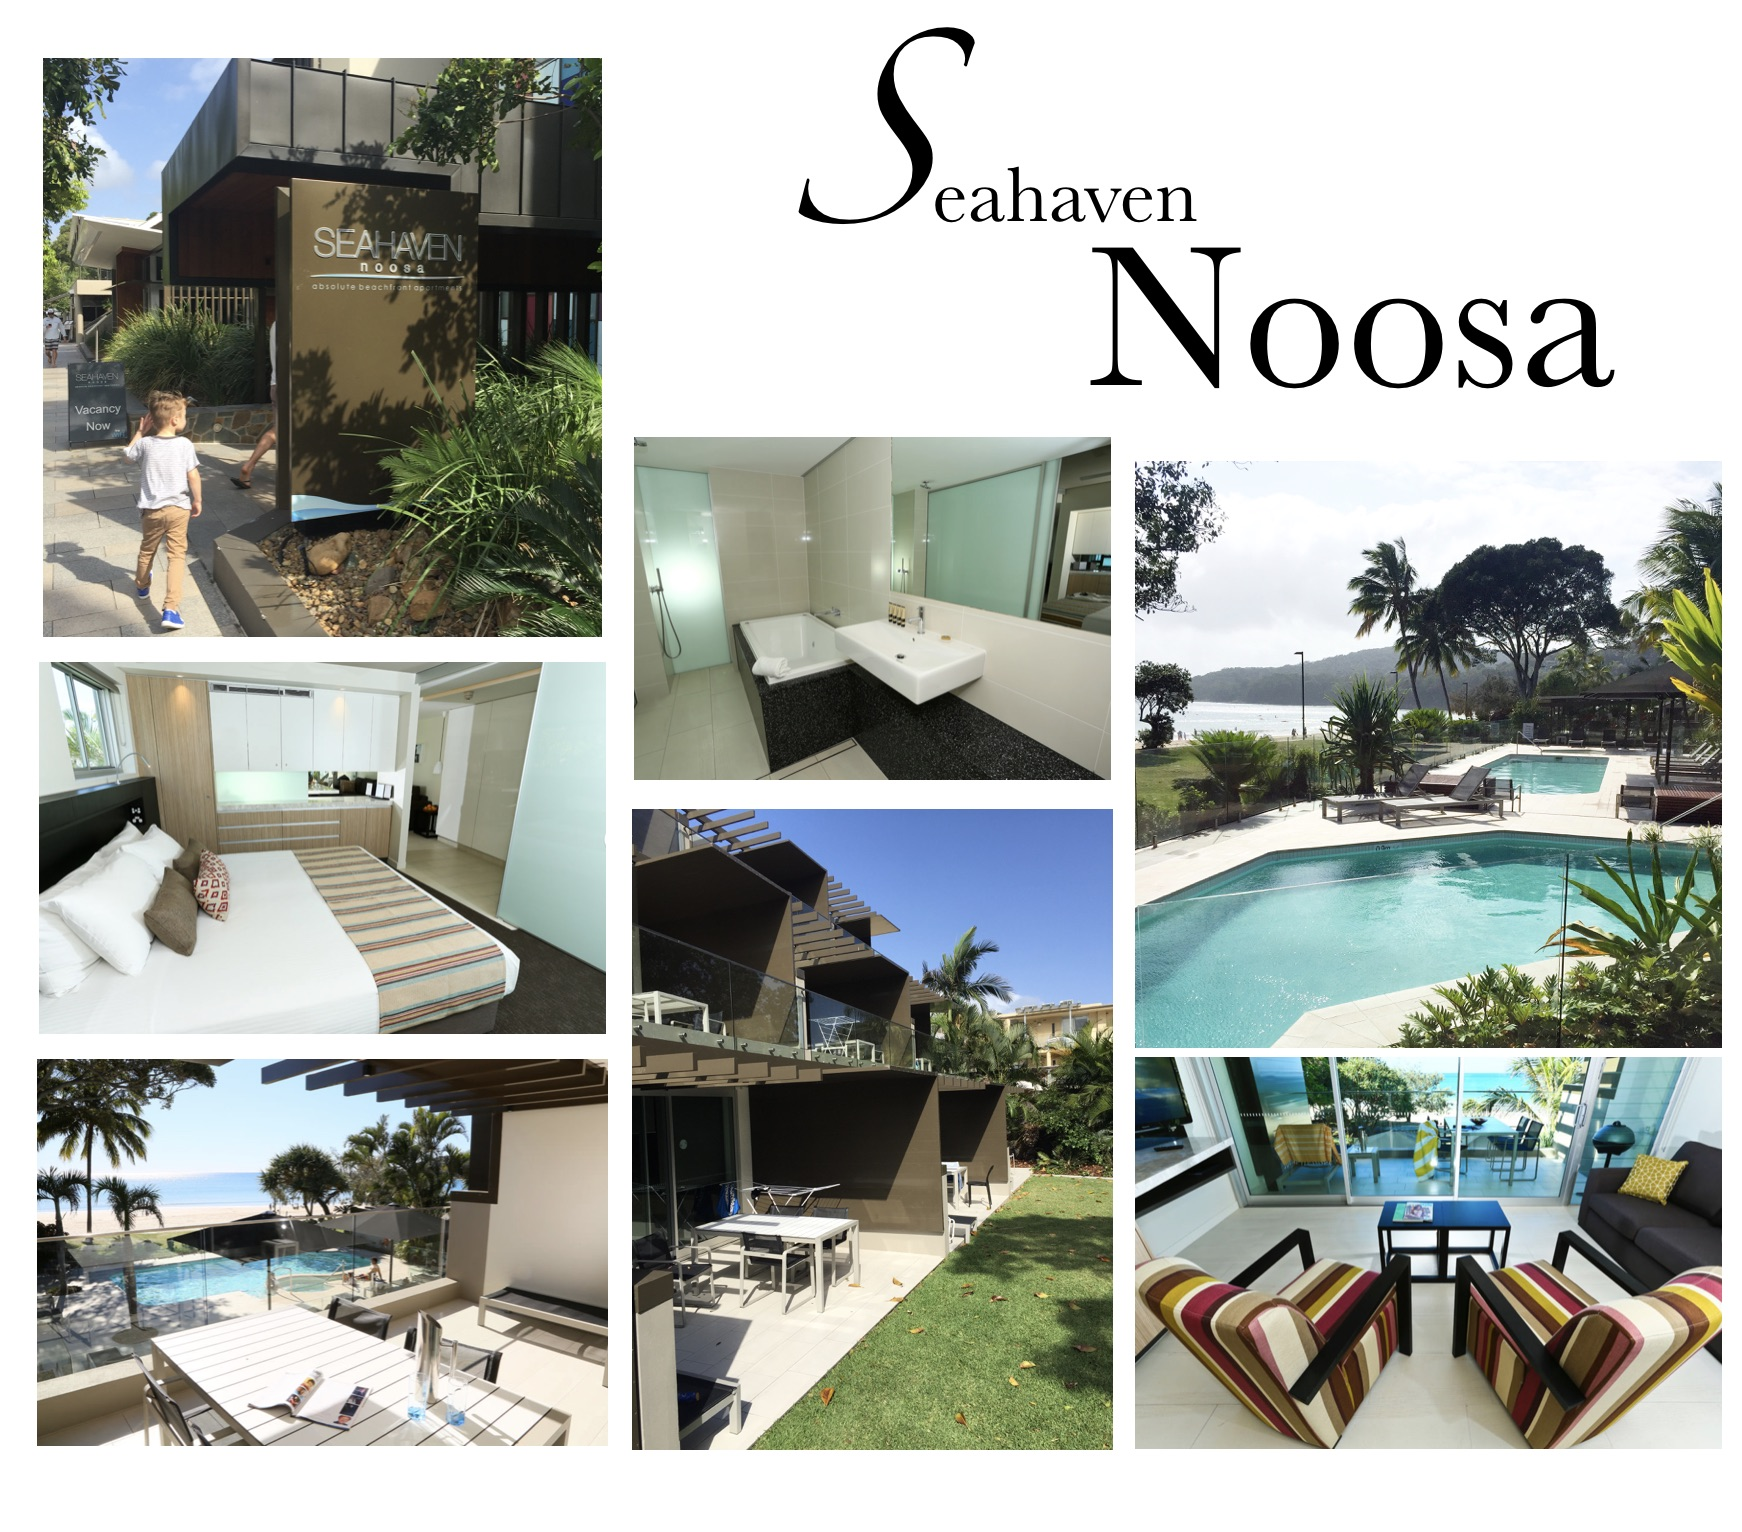 seahaven-noosa-review